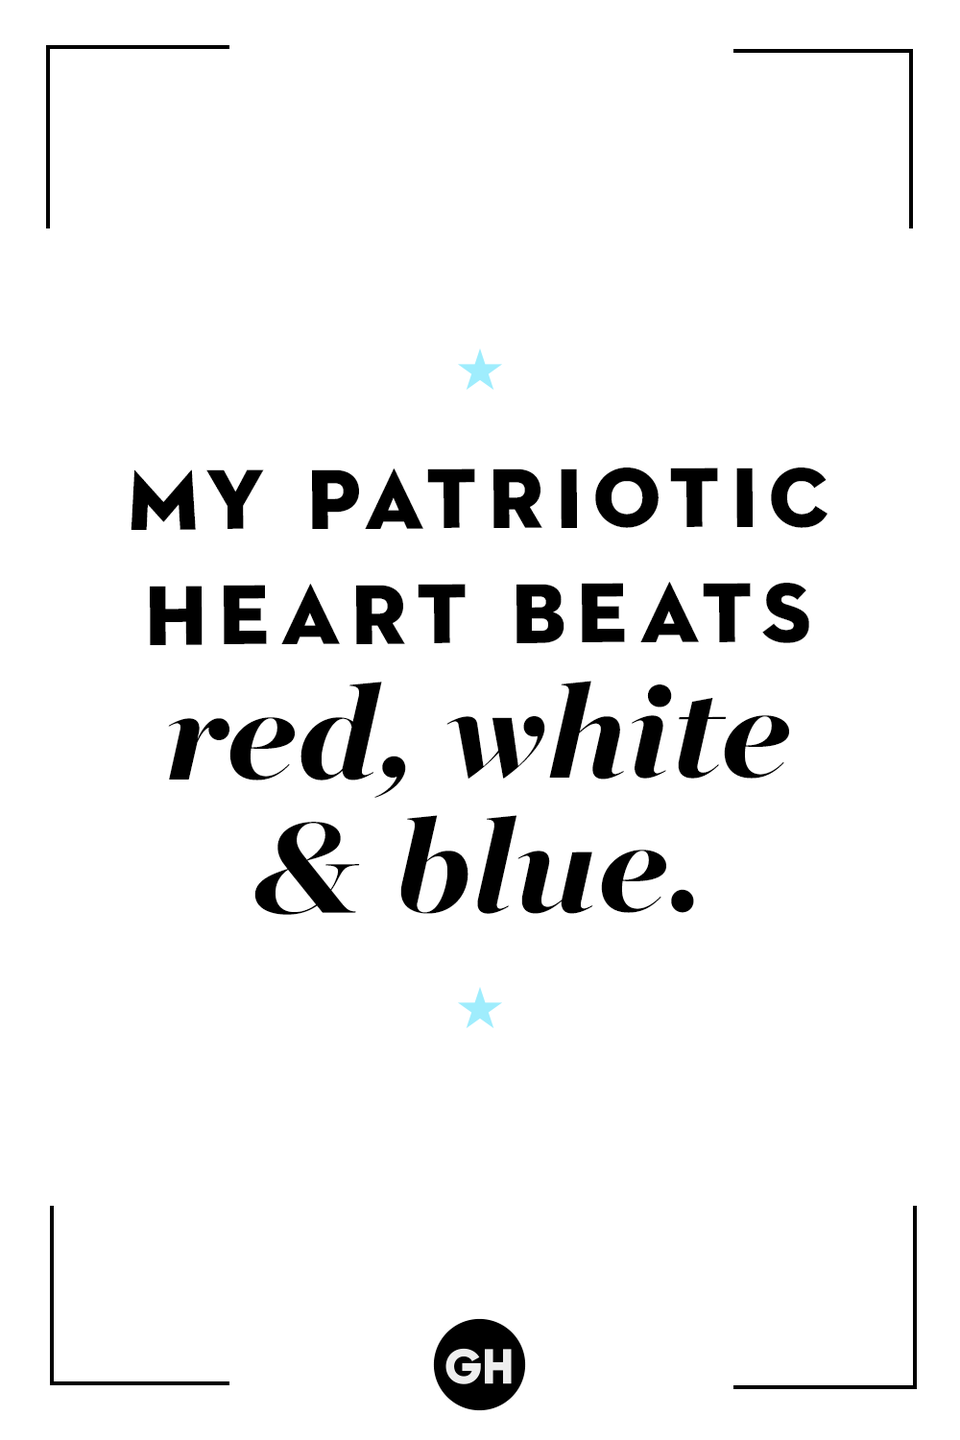 <p>My patriotic heart beats red, white, and blue.</p>